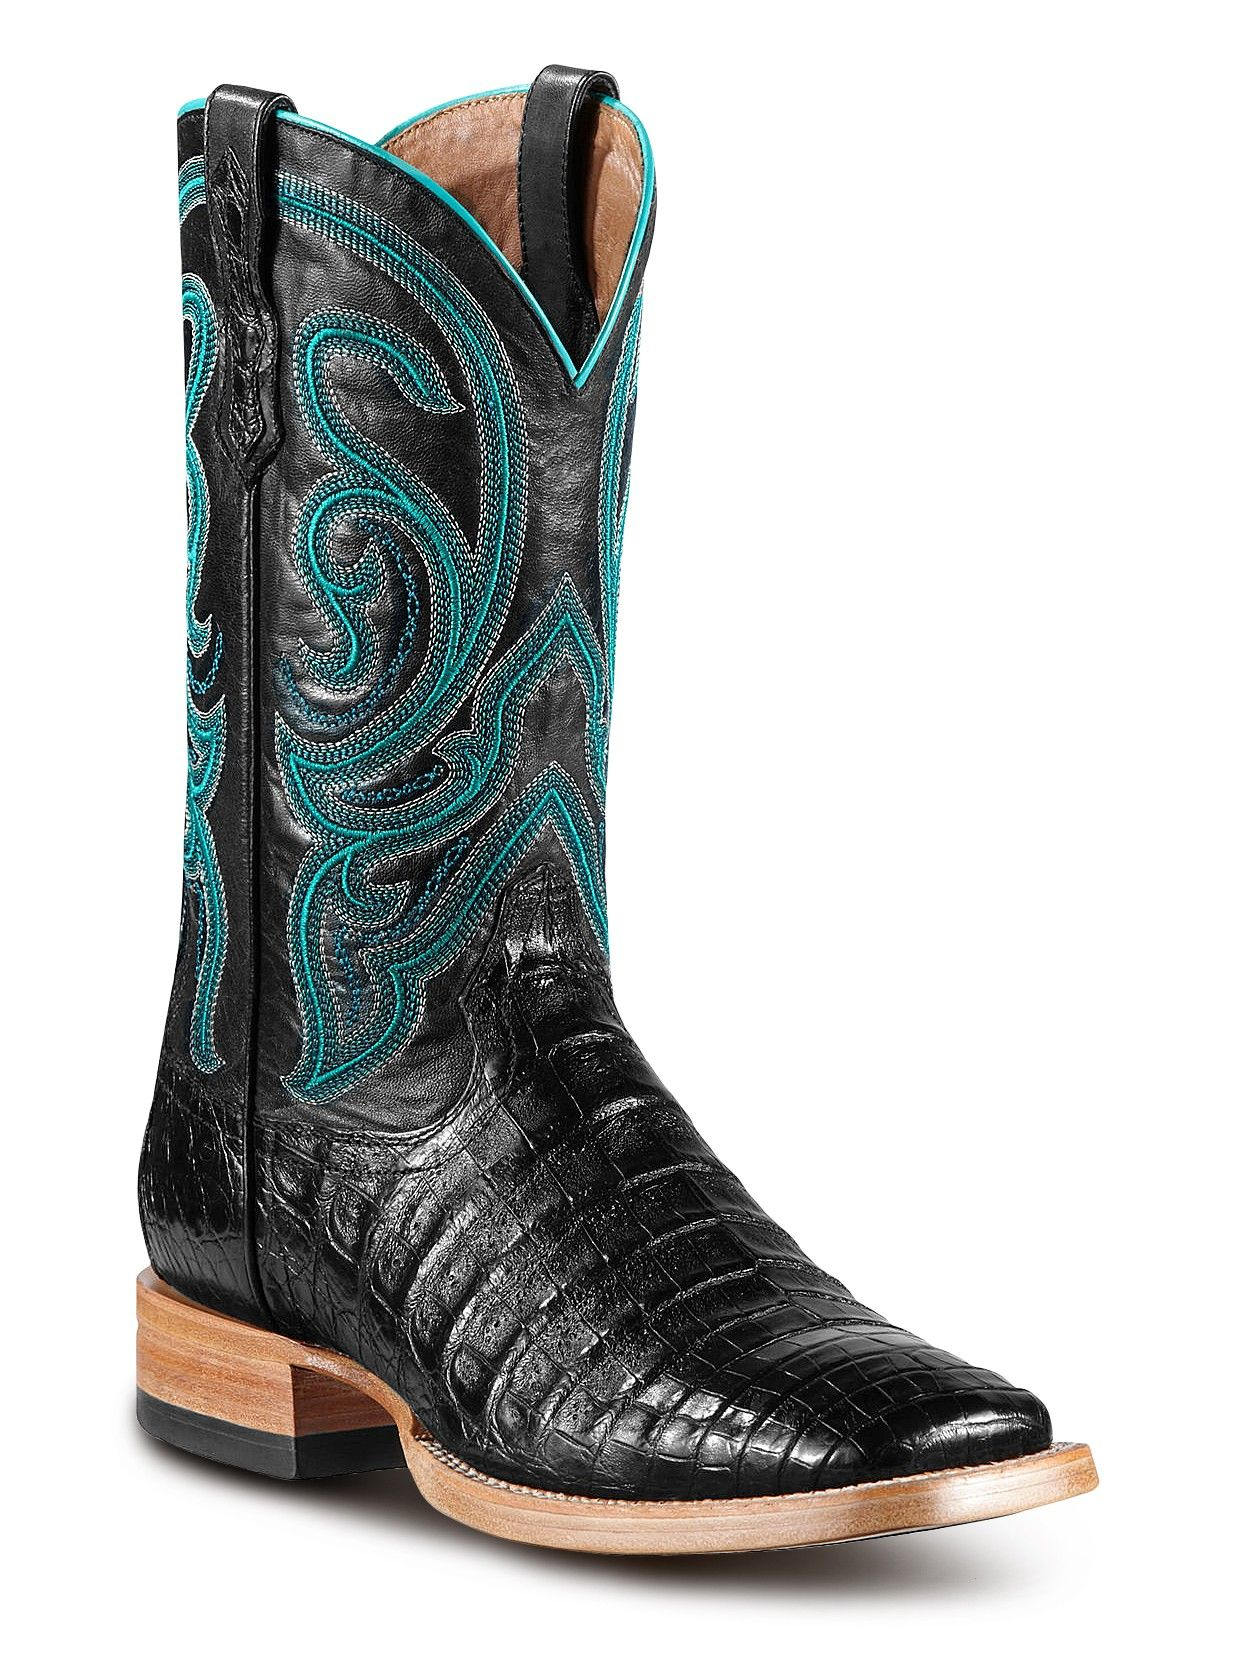 5c4a9884d52 Mens Ariat Black Stillwater Boots 10011792 - Texas Boot Company is ...